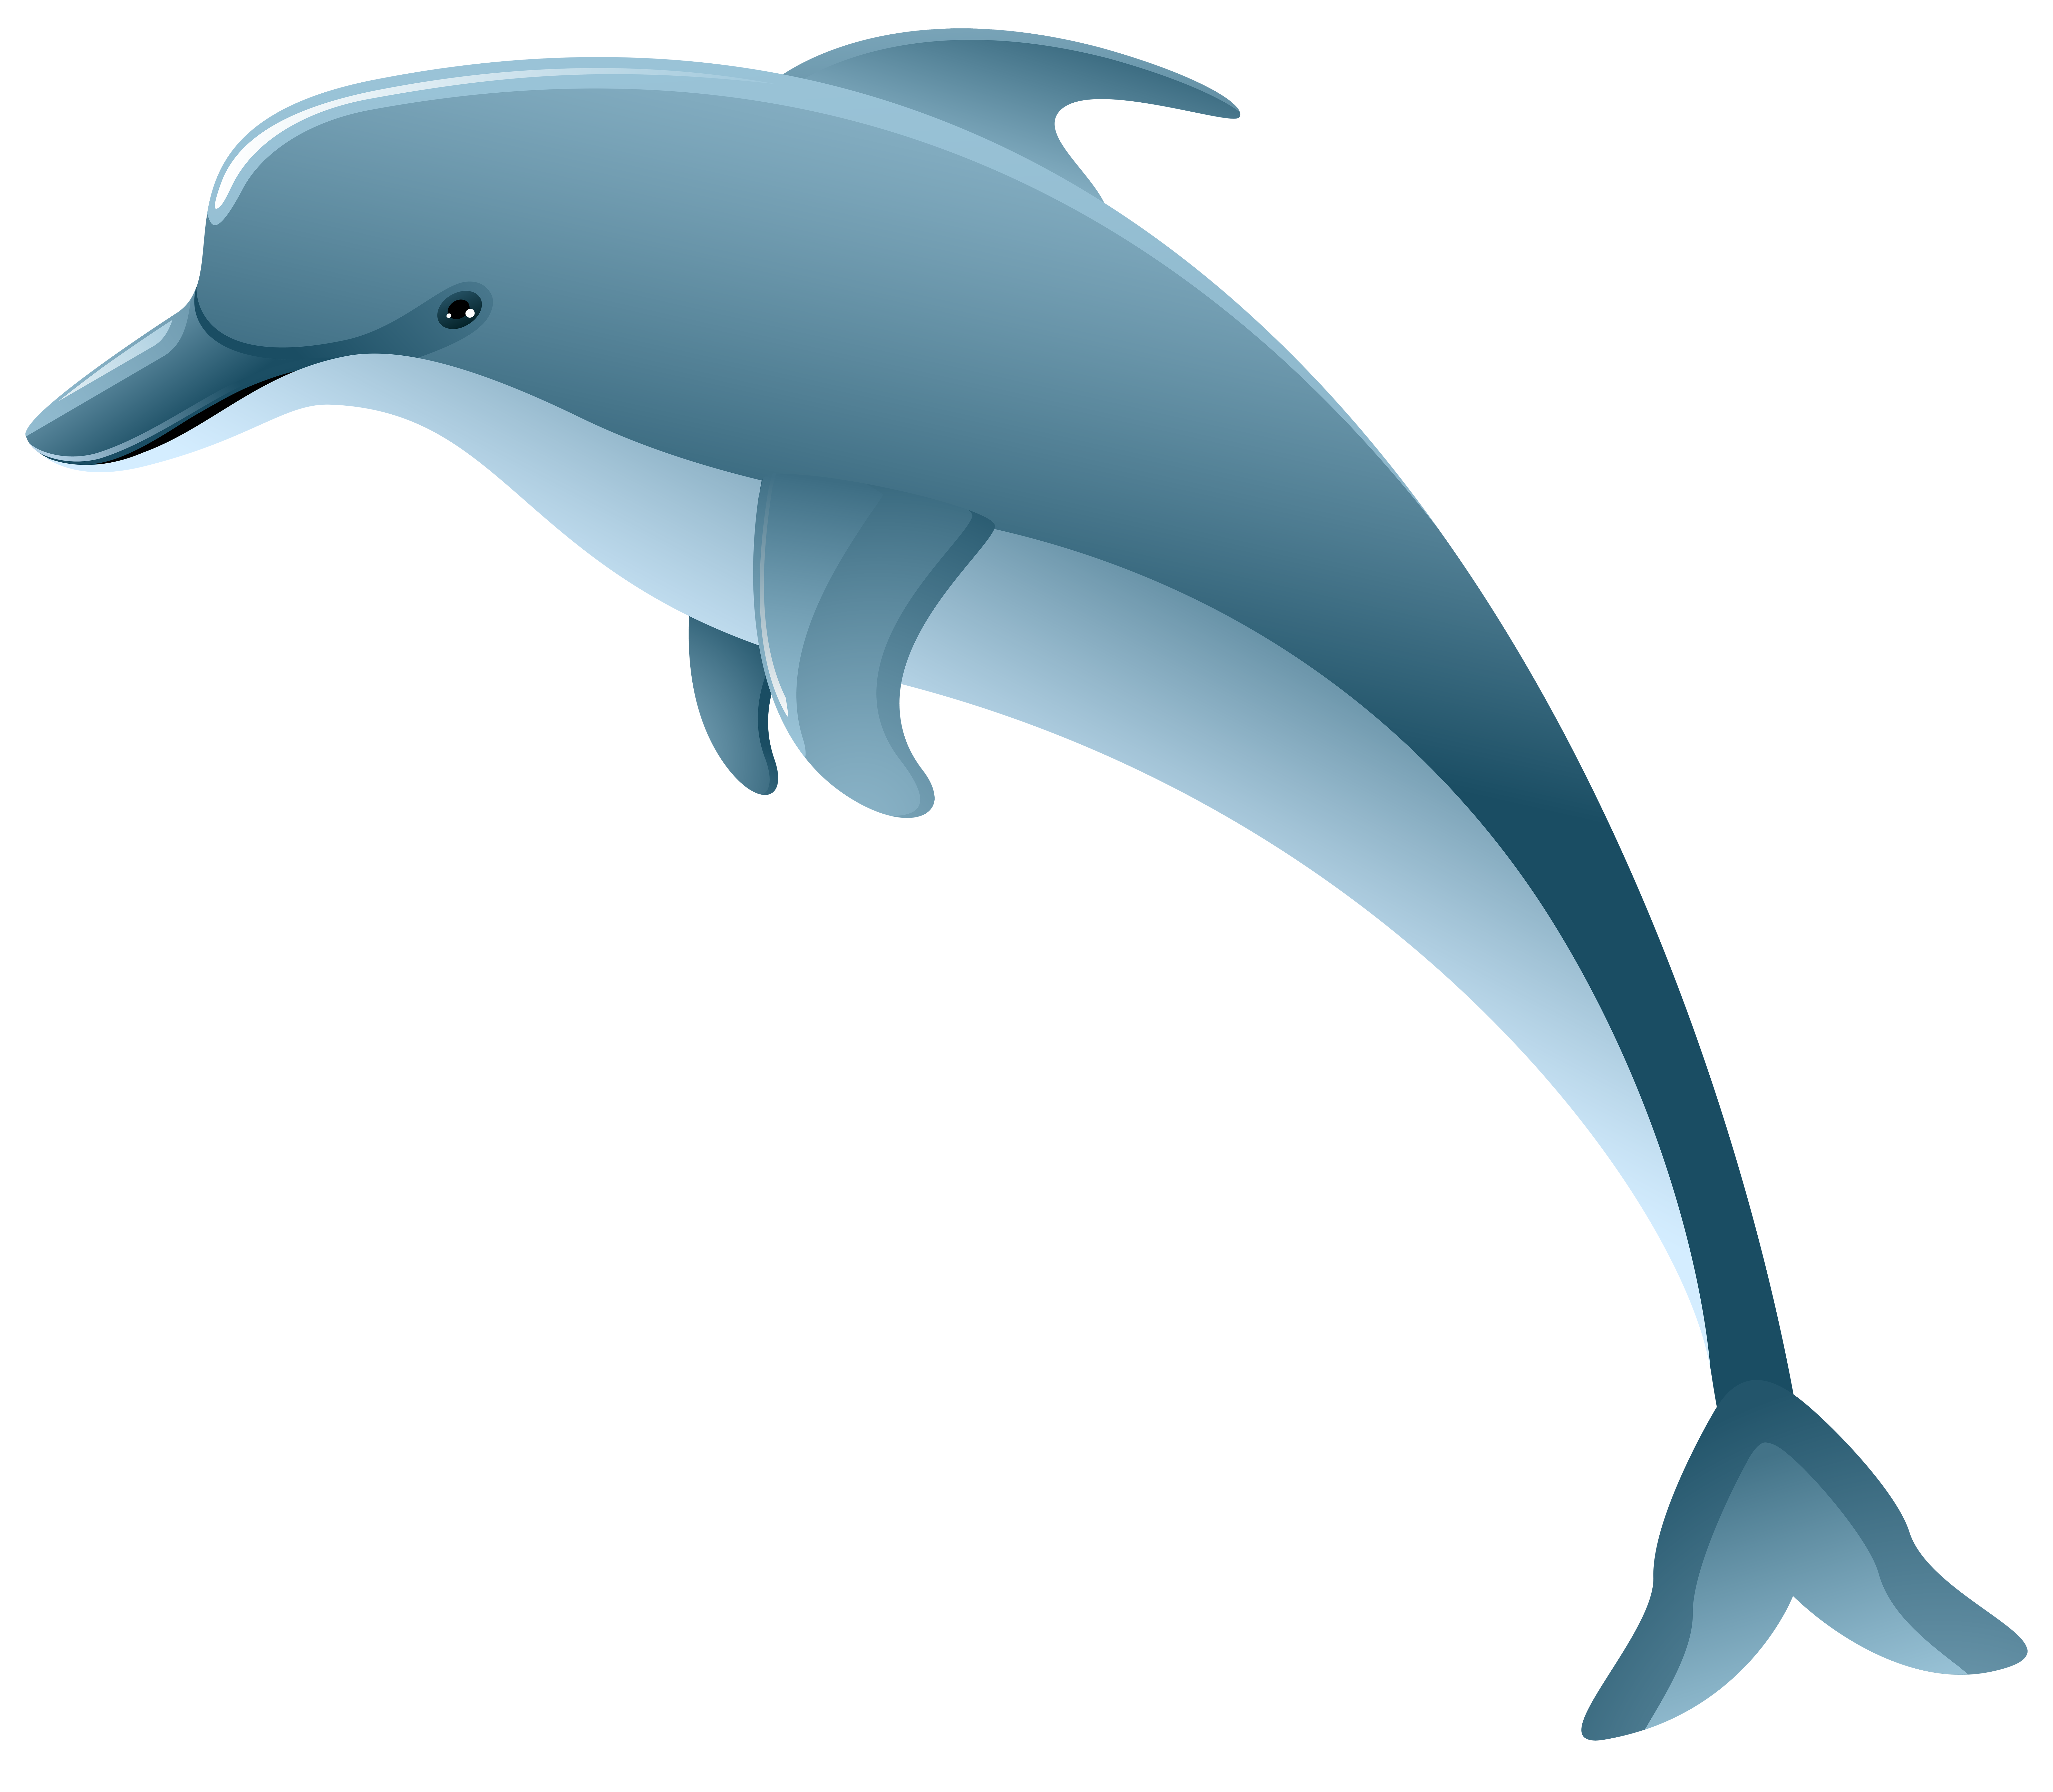 Clip art png image. Clipart dolphin vacation florida